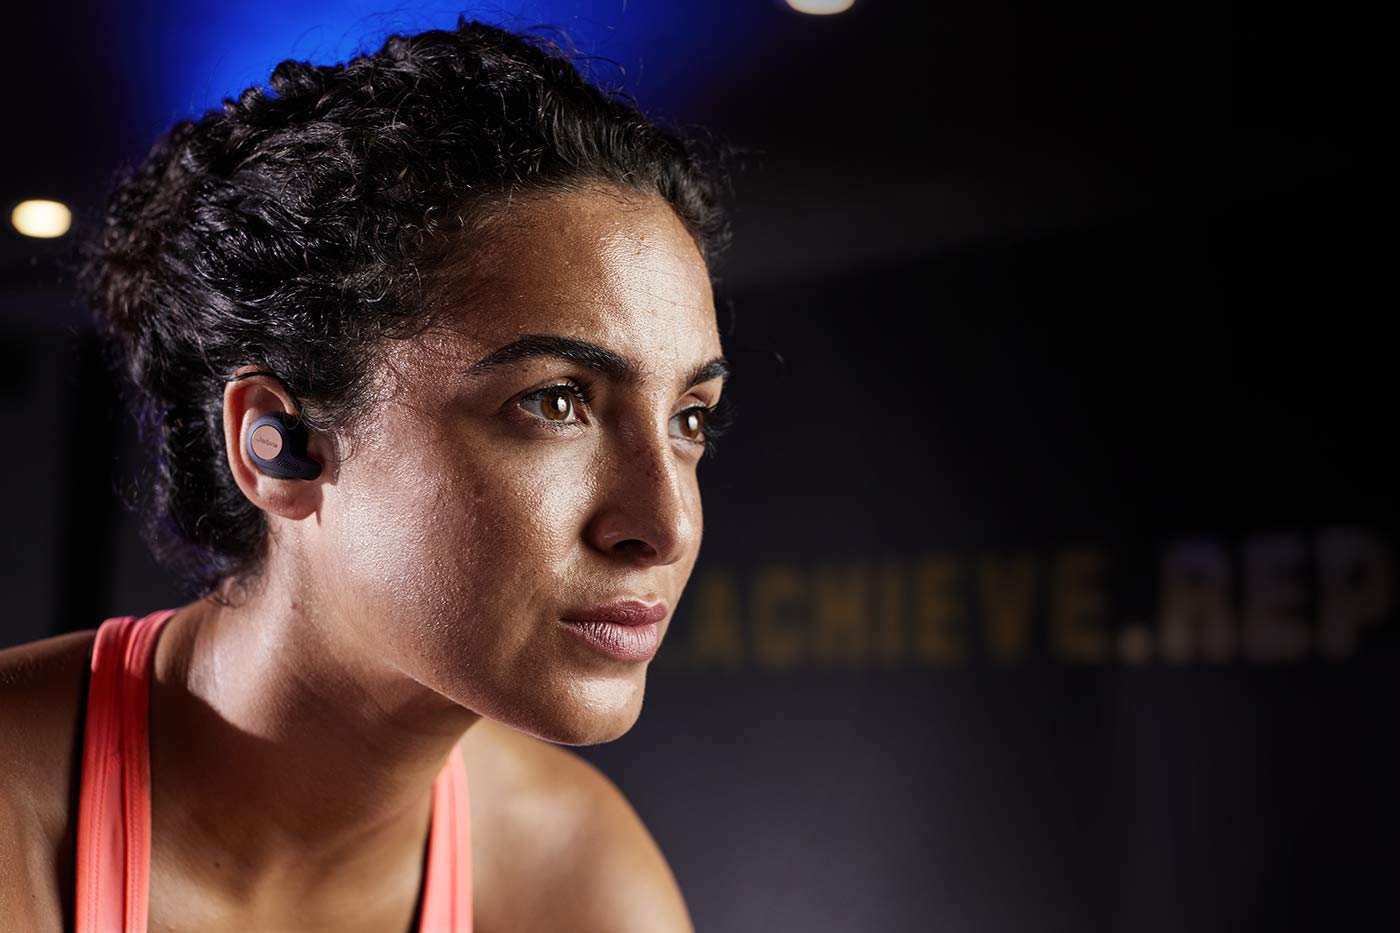 Jabra Elite Active 65t True Wireless Sports Earbuds with Charging Case - Copper Black by Jabra (Image #4)